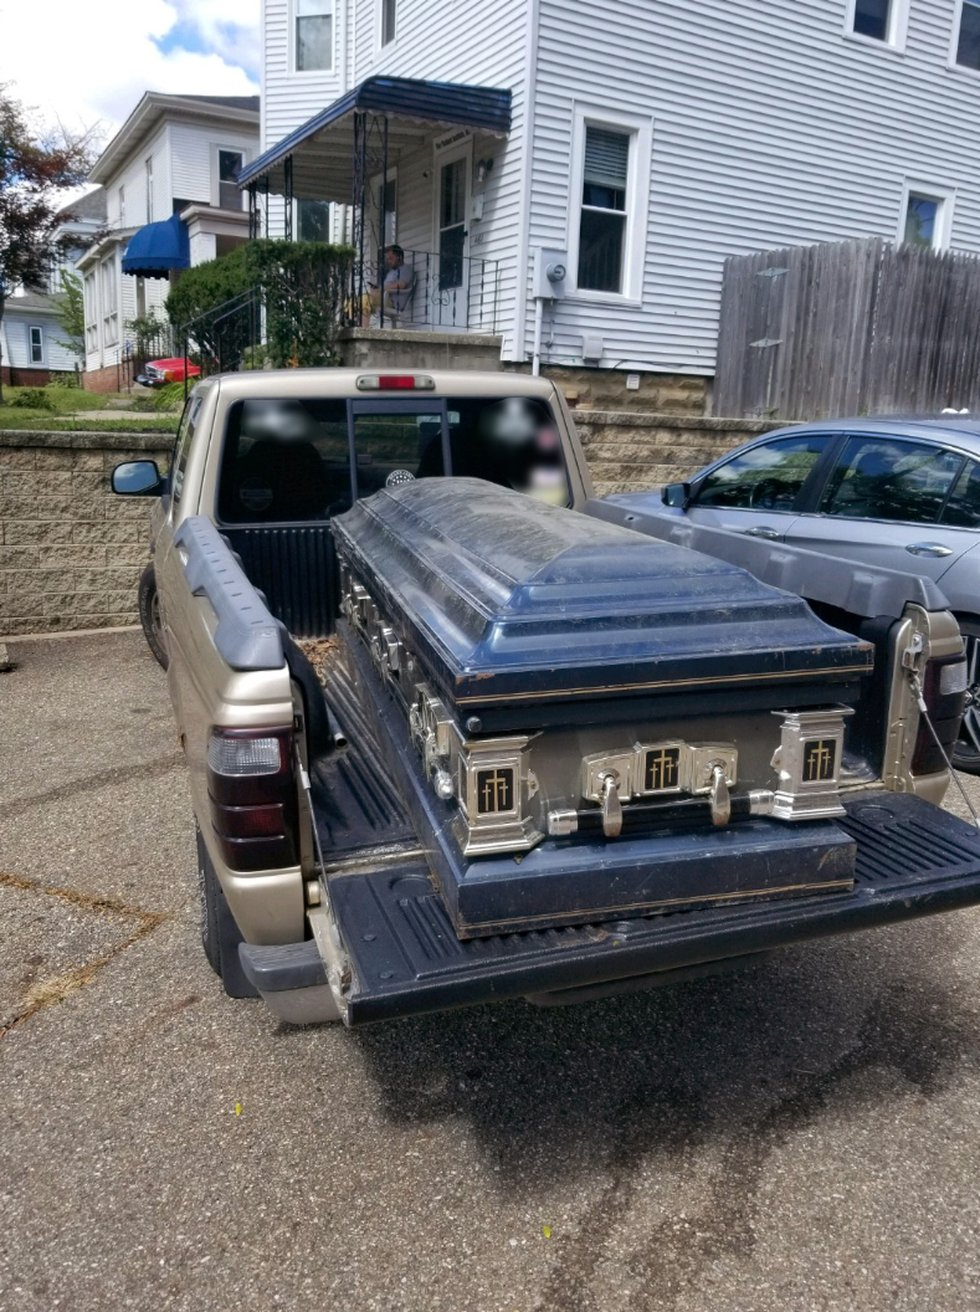 The coffin found in Akron was locked.